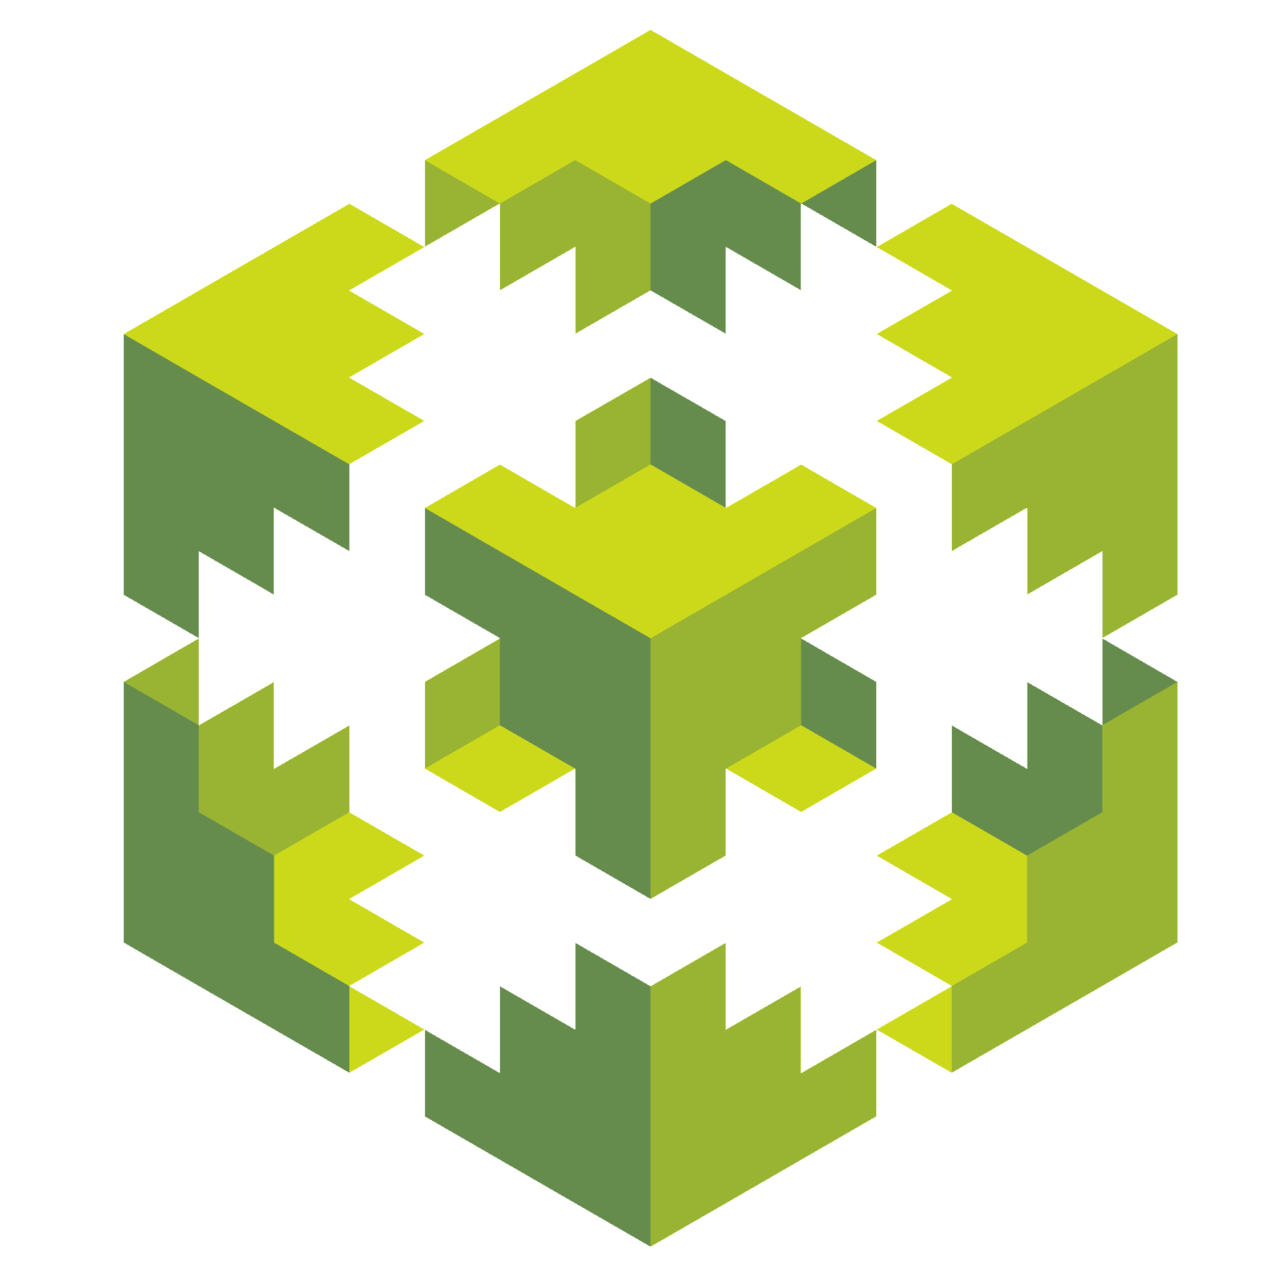 Drawing pentagon isometric. Made with patterns d